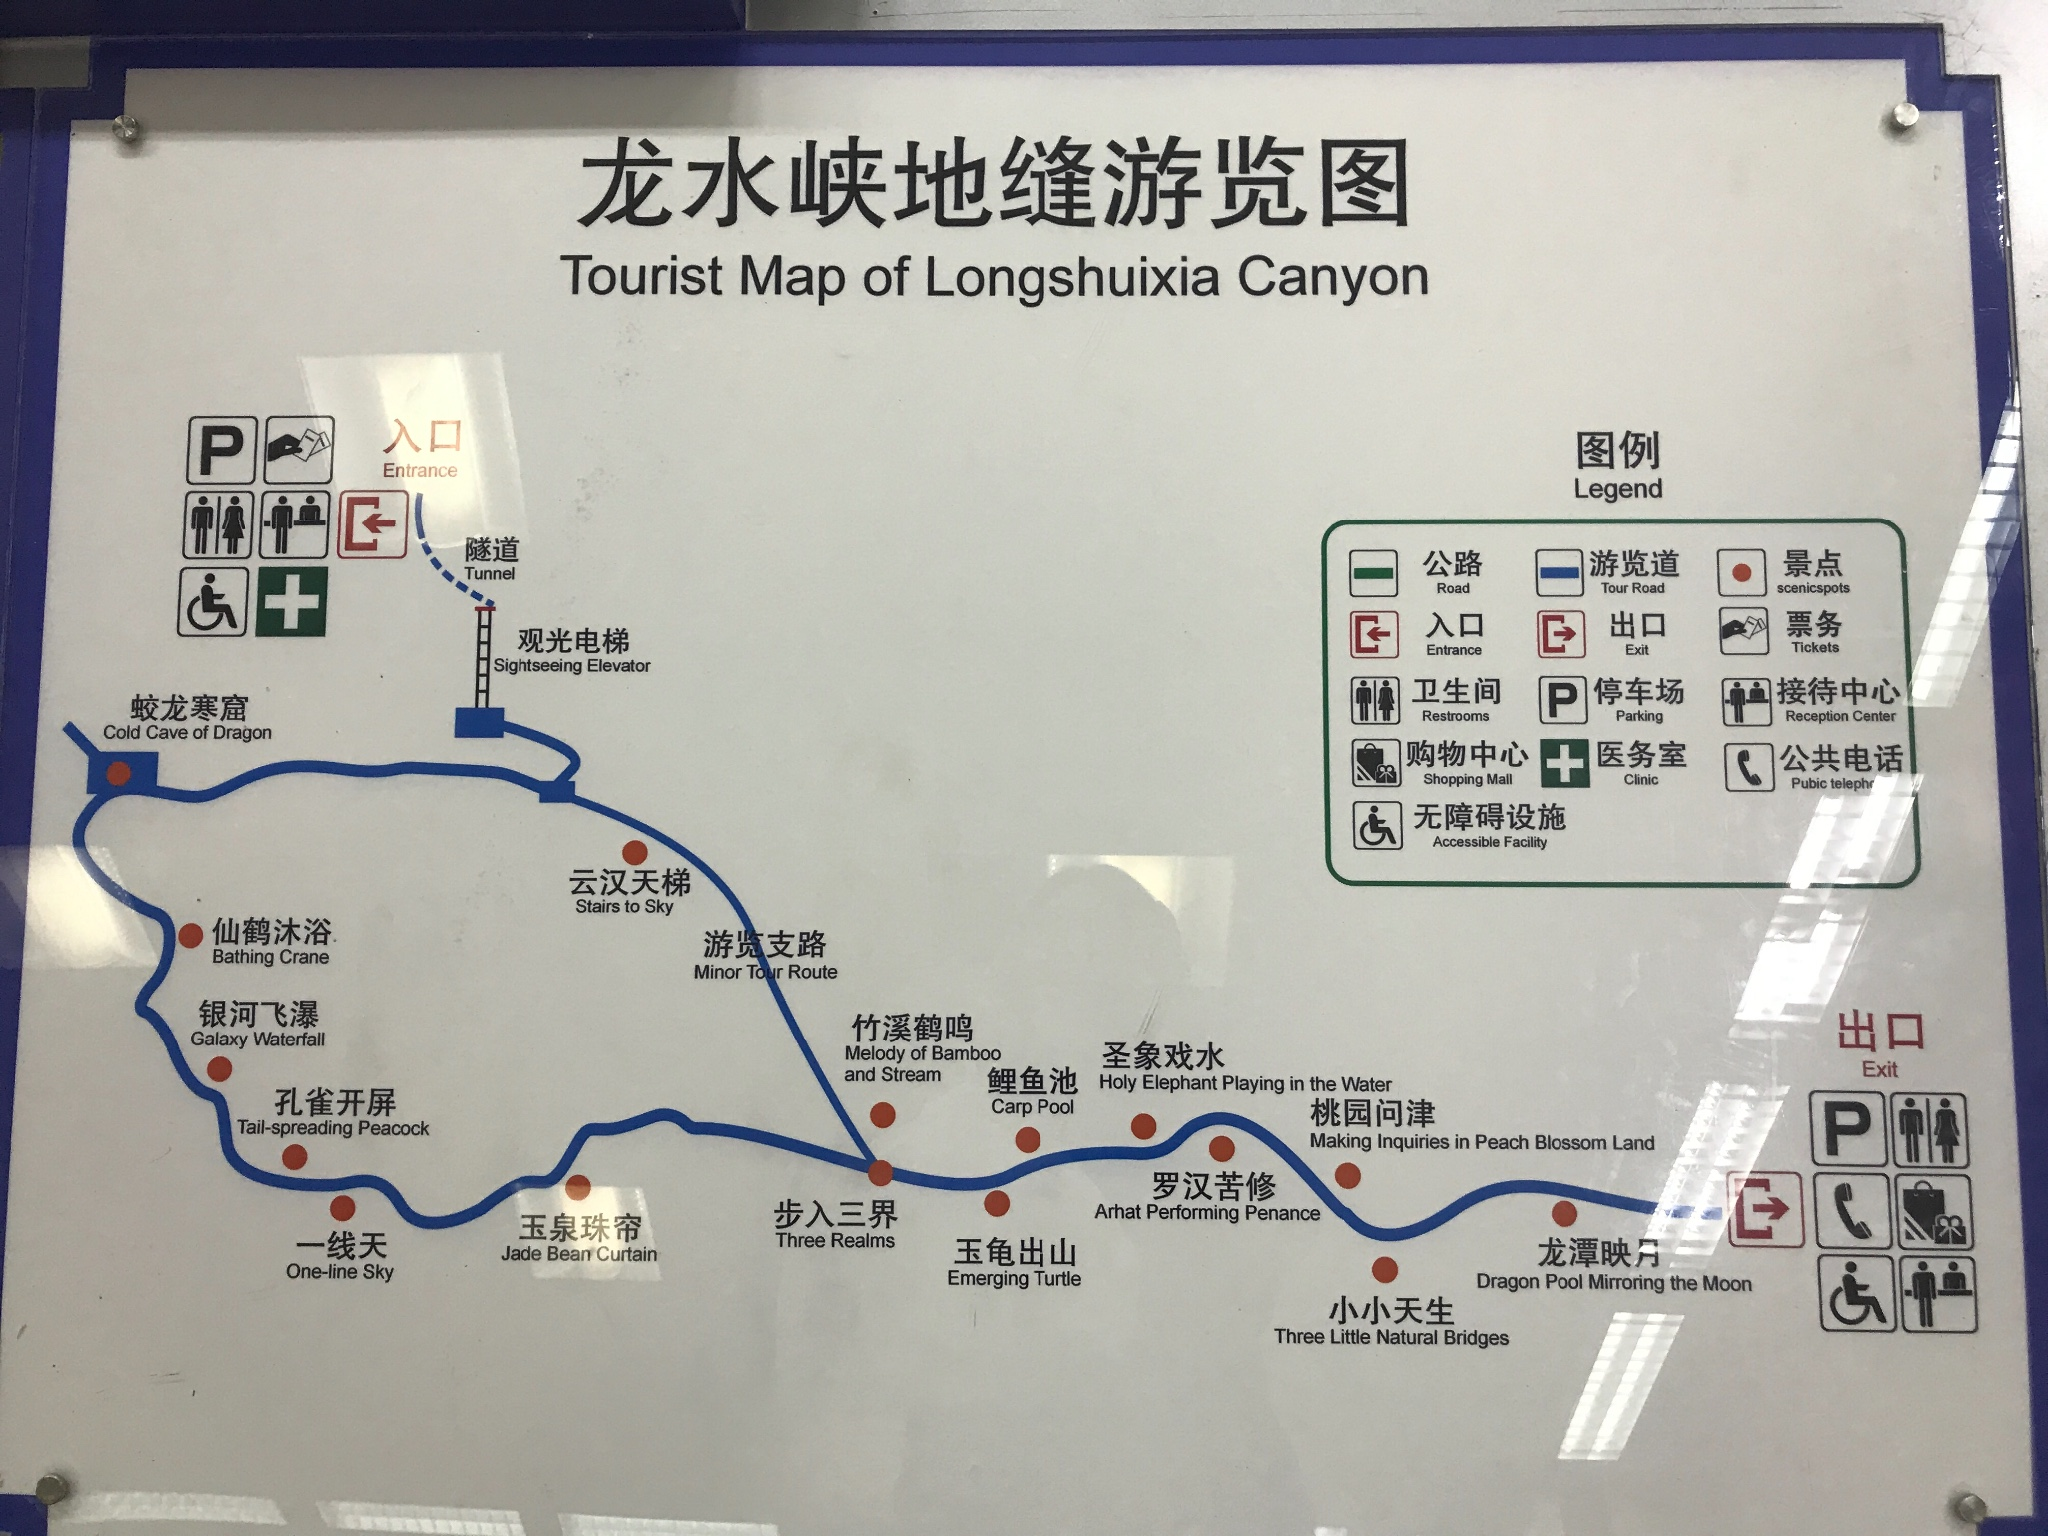 Longshuixia Ground Fissure Gorge tourist map